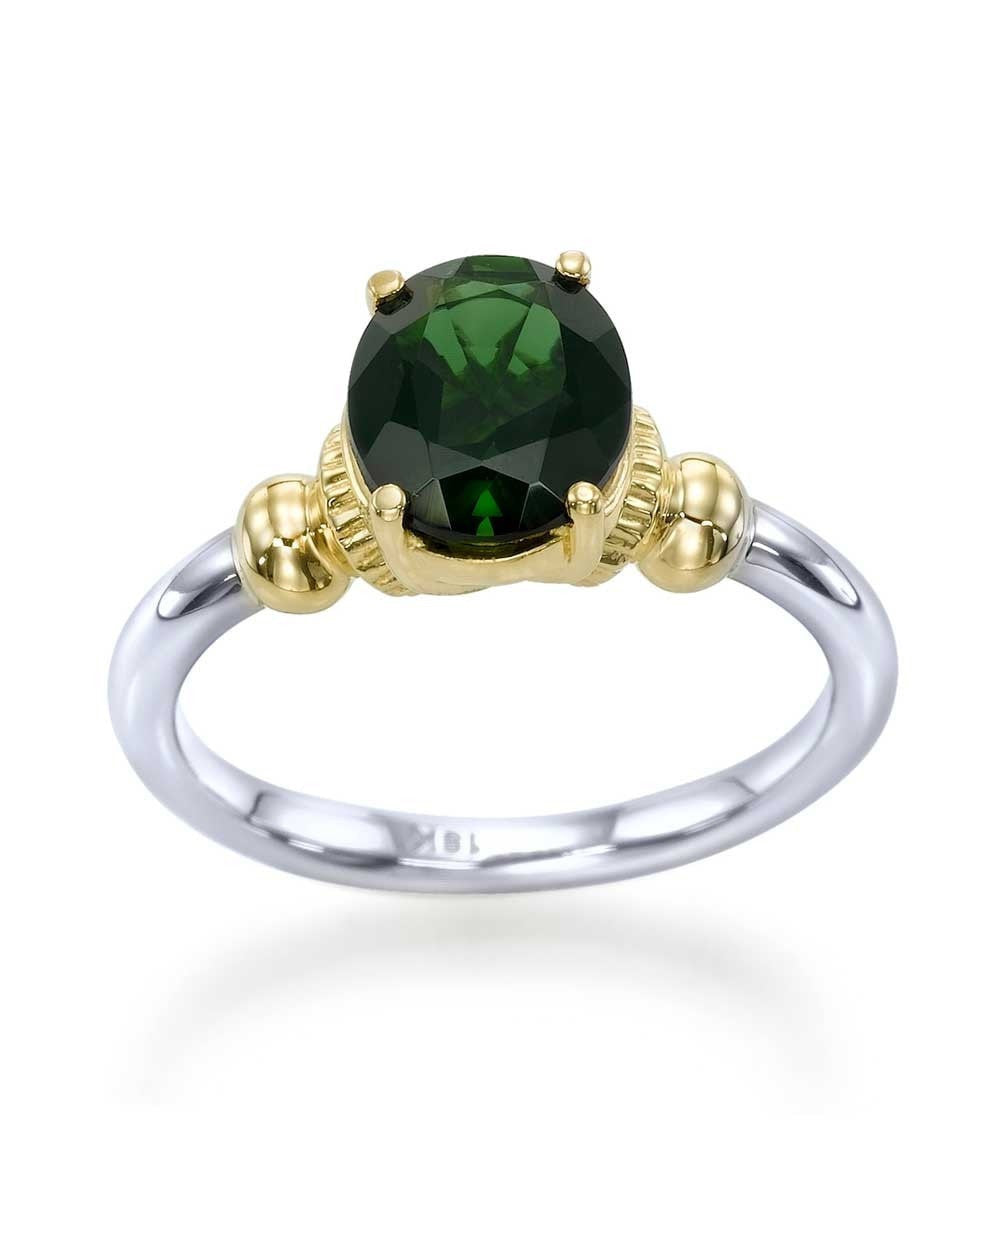 image from tourmaline gold gemstone green ring jewellery oval yellow rings engagement